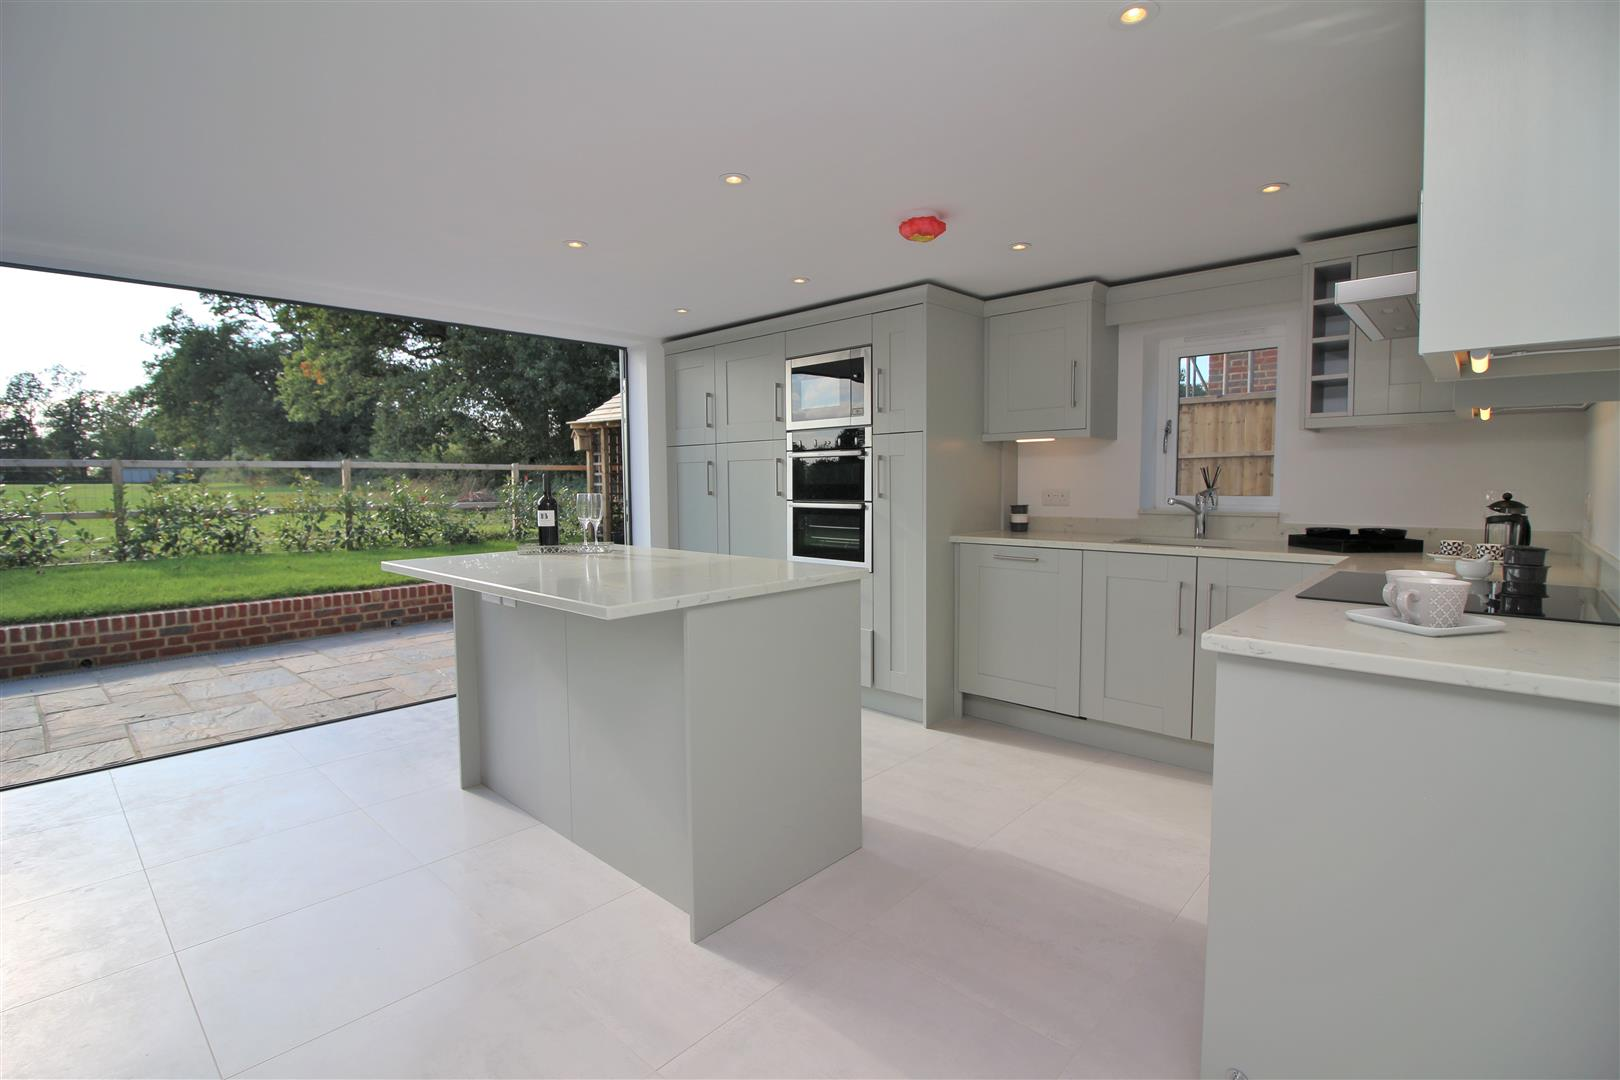 4 bed for sale in London Road, Shenley - Property Image 1